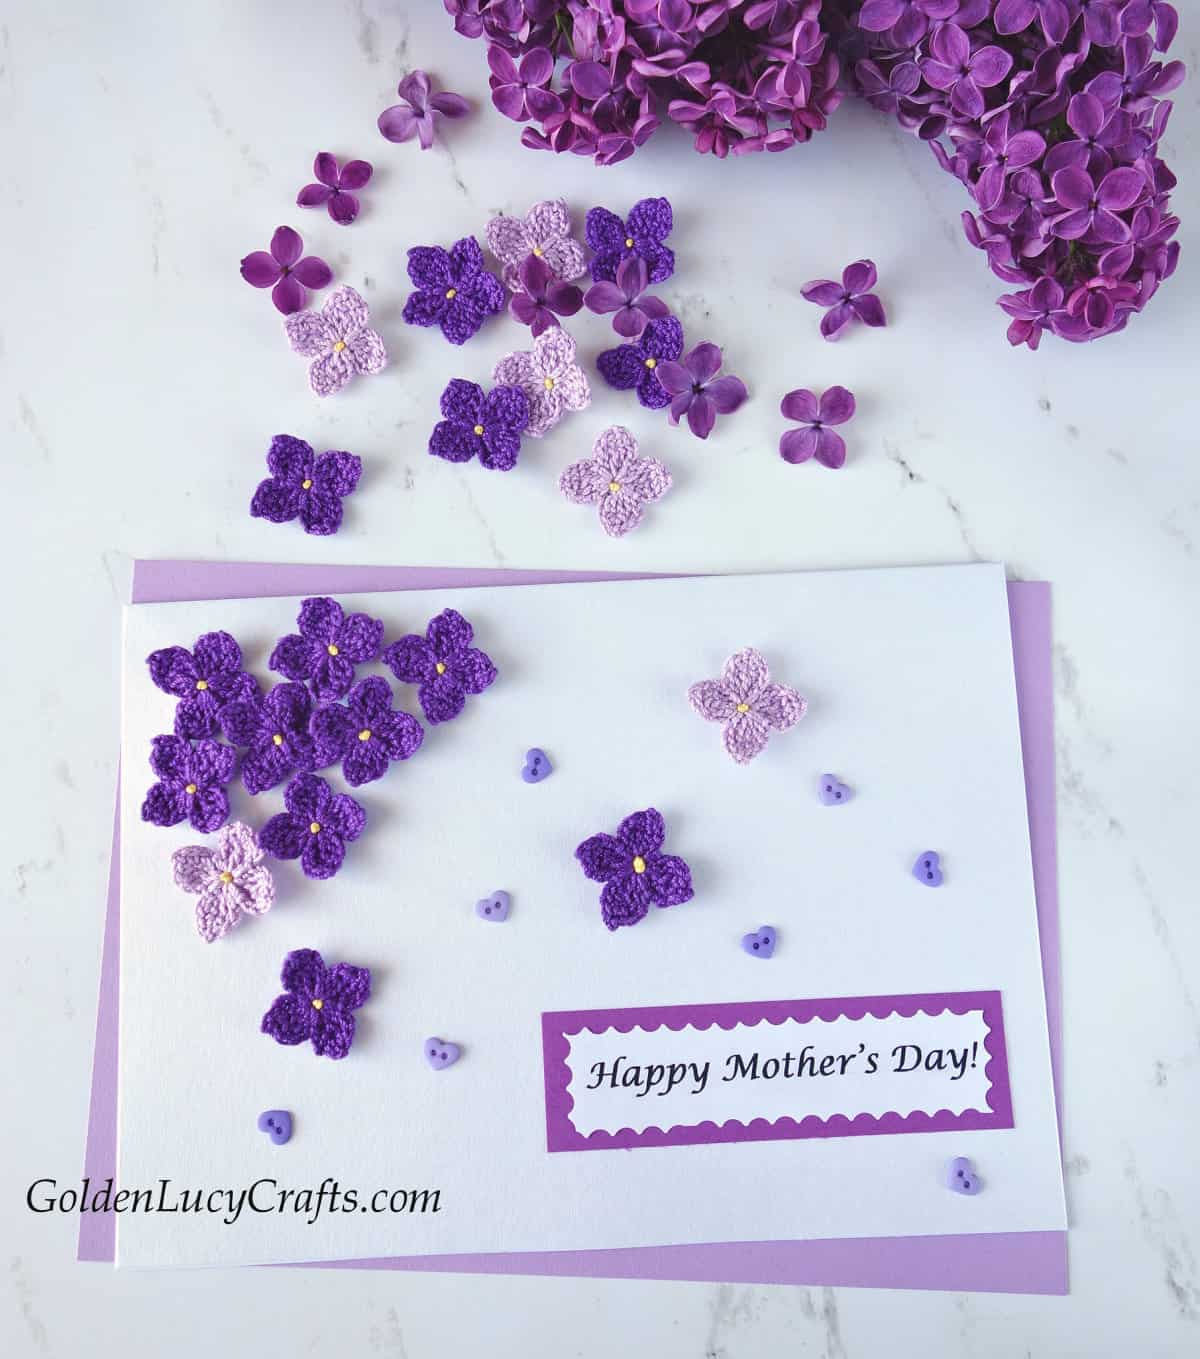 Mother's Day card embellished with crochet lilac flowers, real lilac branch in the background.